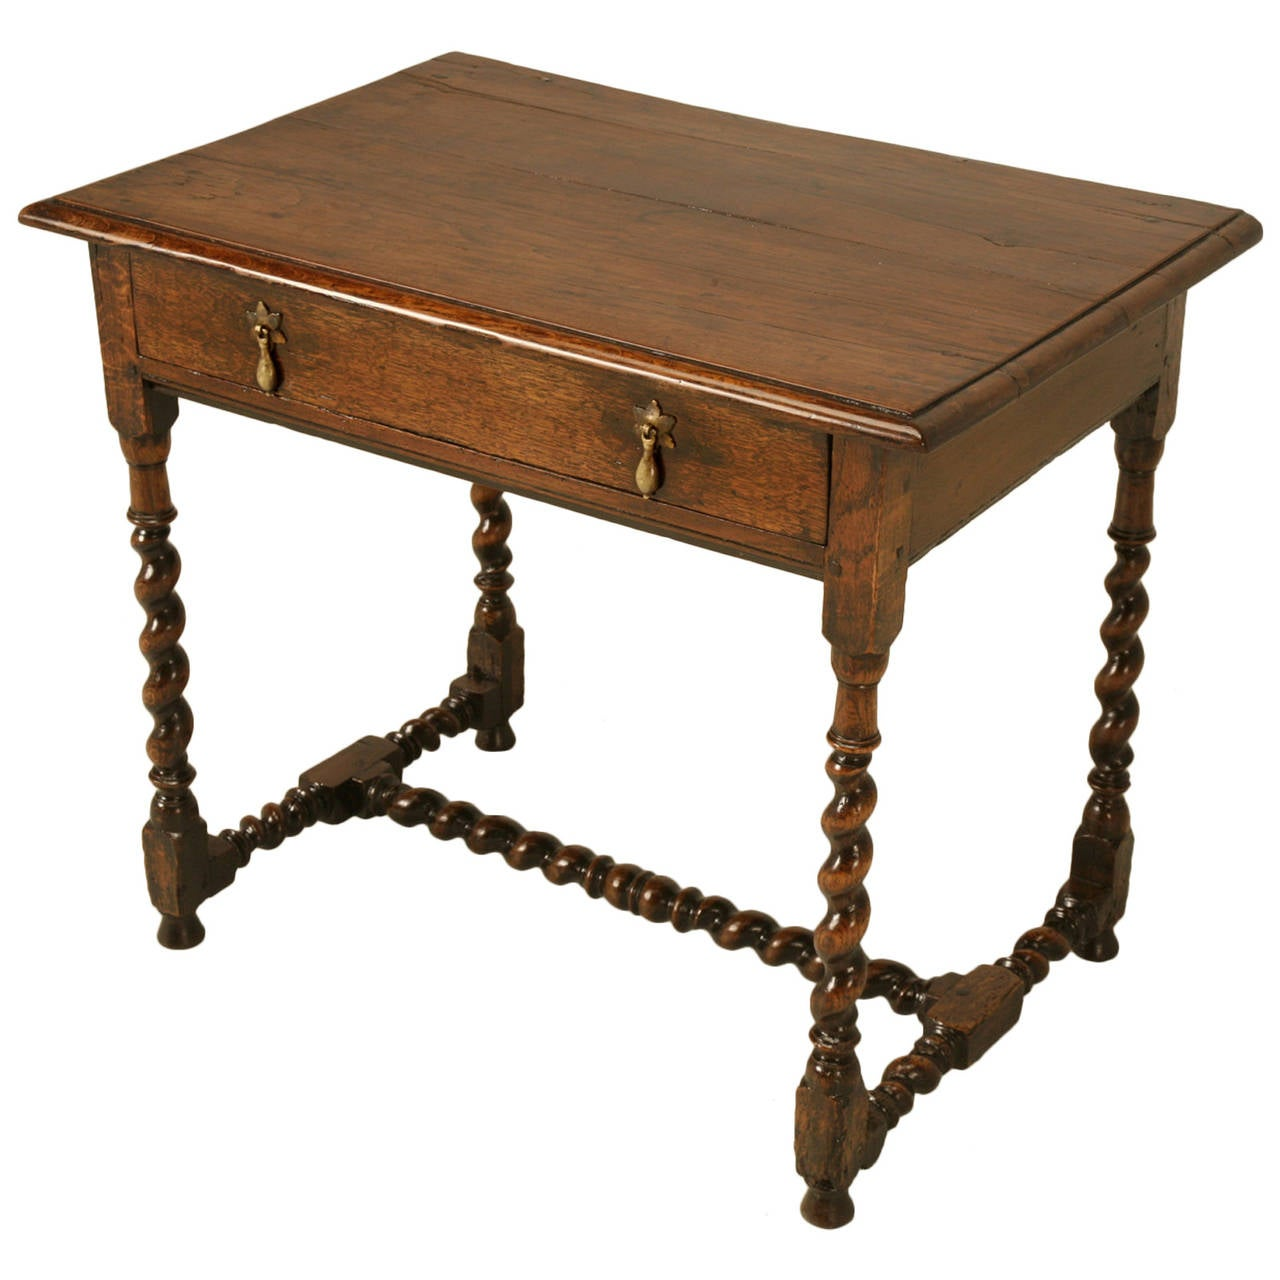 English Country Style Writing Desk Or End Table, Circa 1700s For Sale